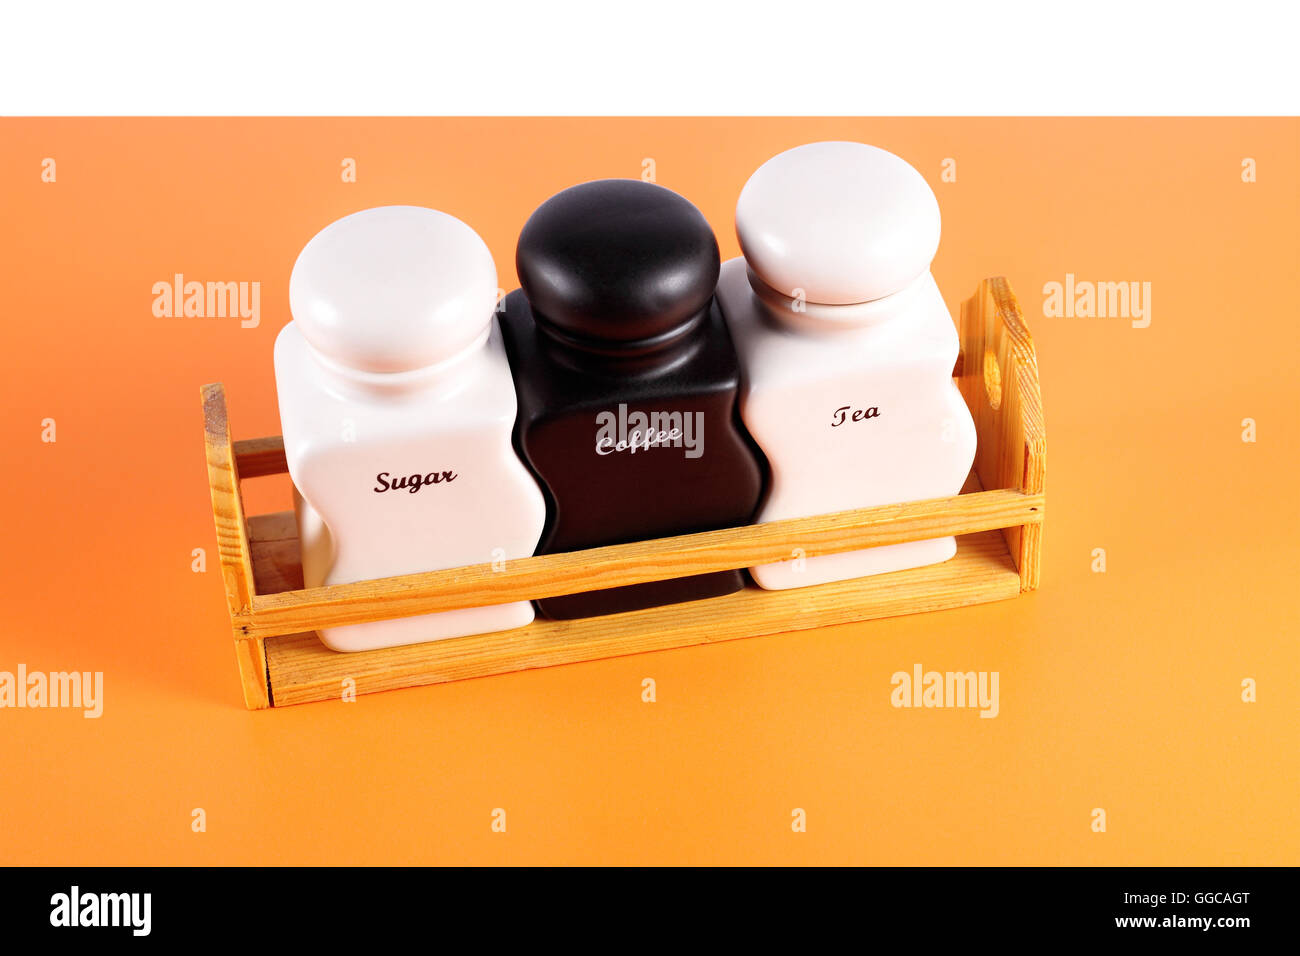 Capacities for condiment spices - Sugar, coffee, tea a set on a orange background. - Stock Image